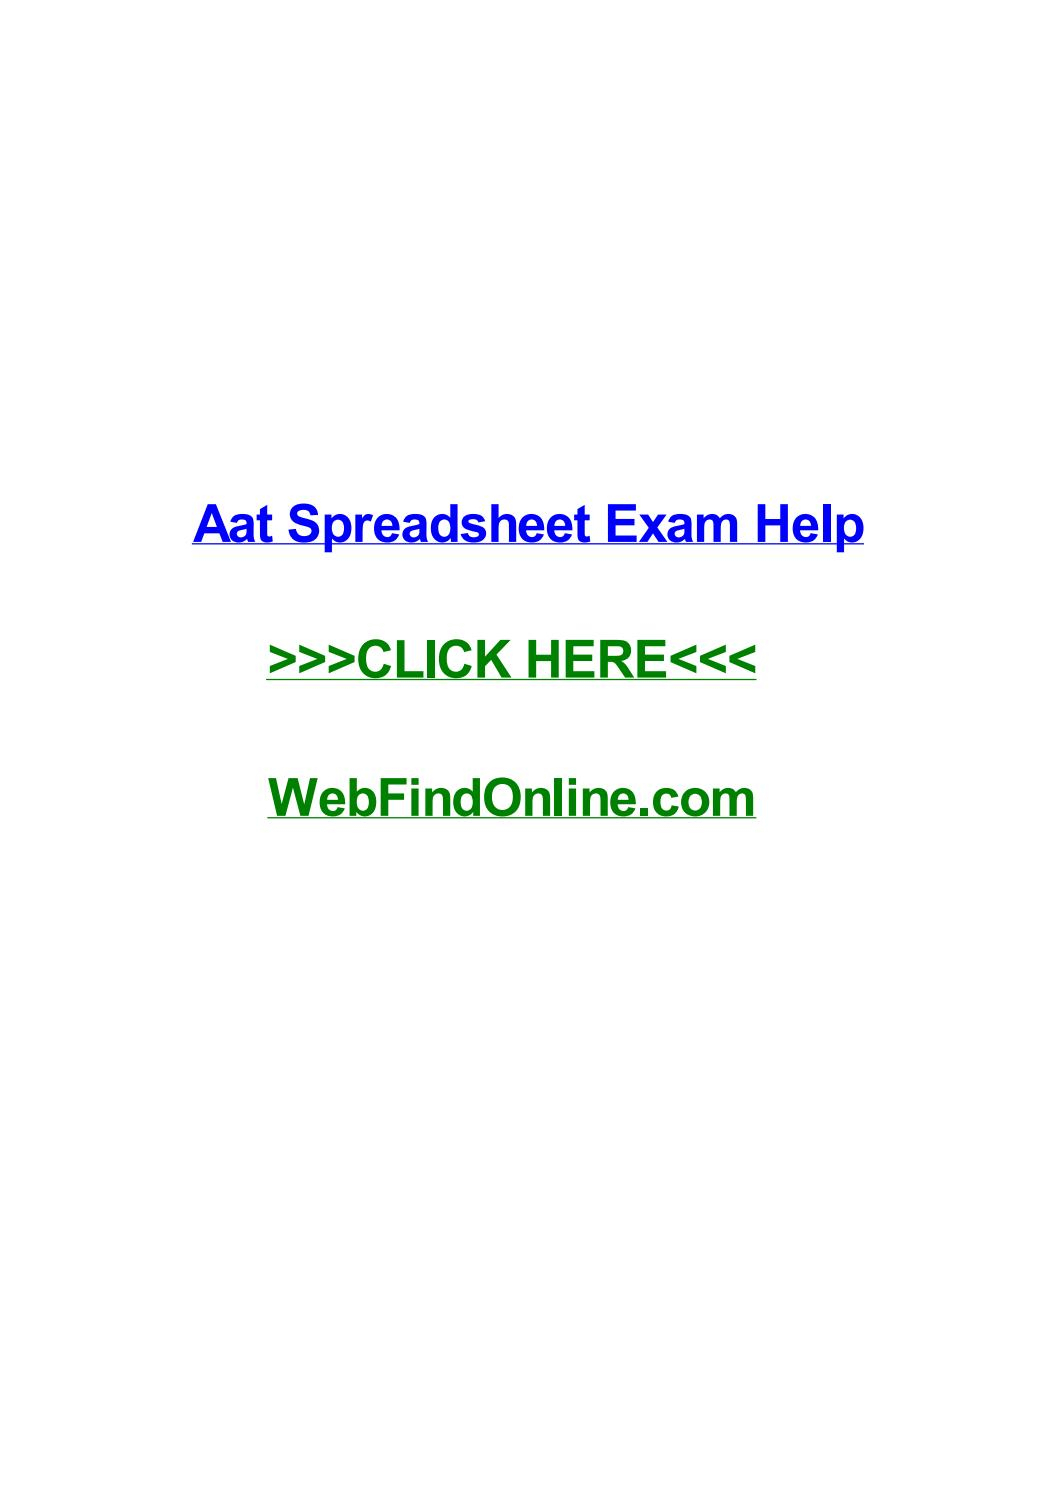 Aat Spreadsheet Exam Intended For Aat Spreadsheet Exam Helpamyqgna  Issuu